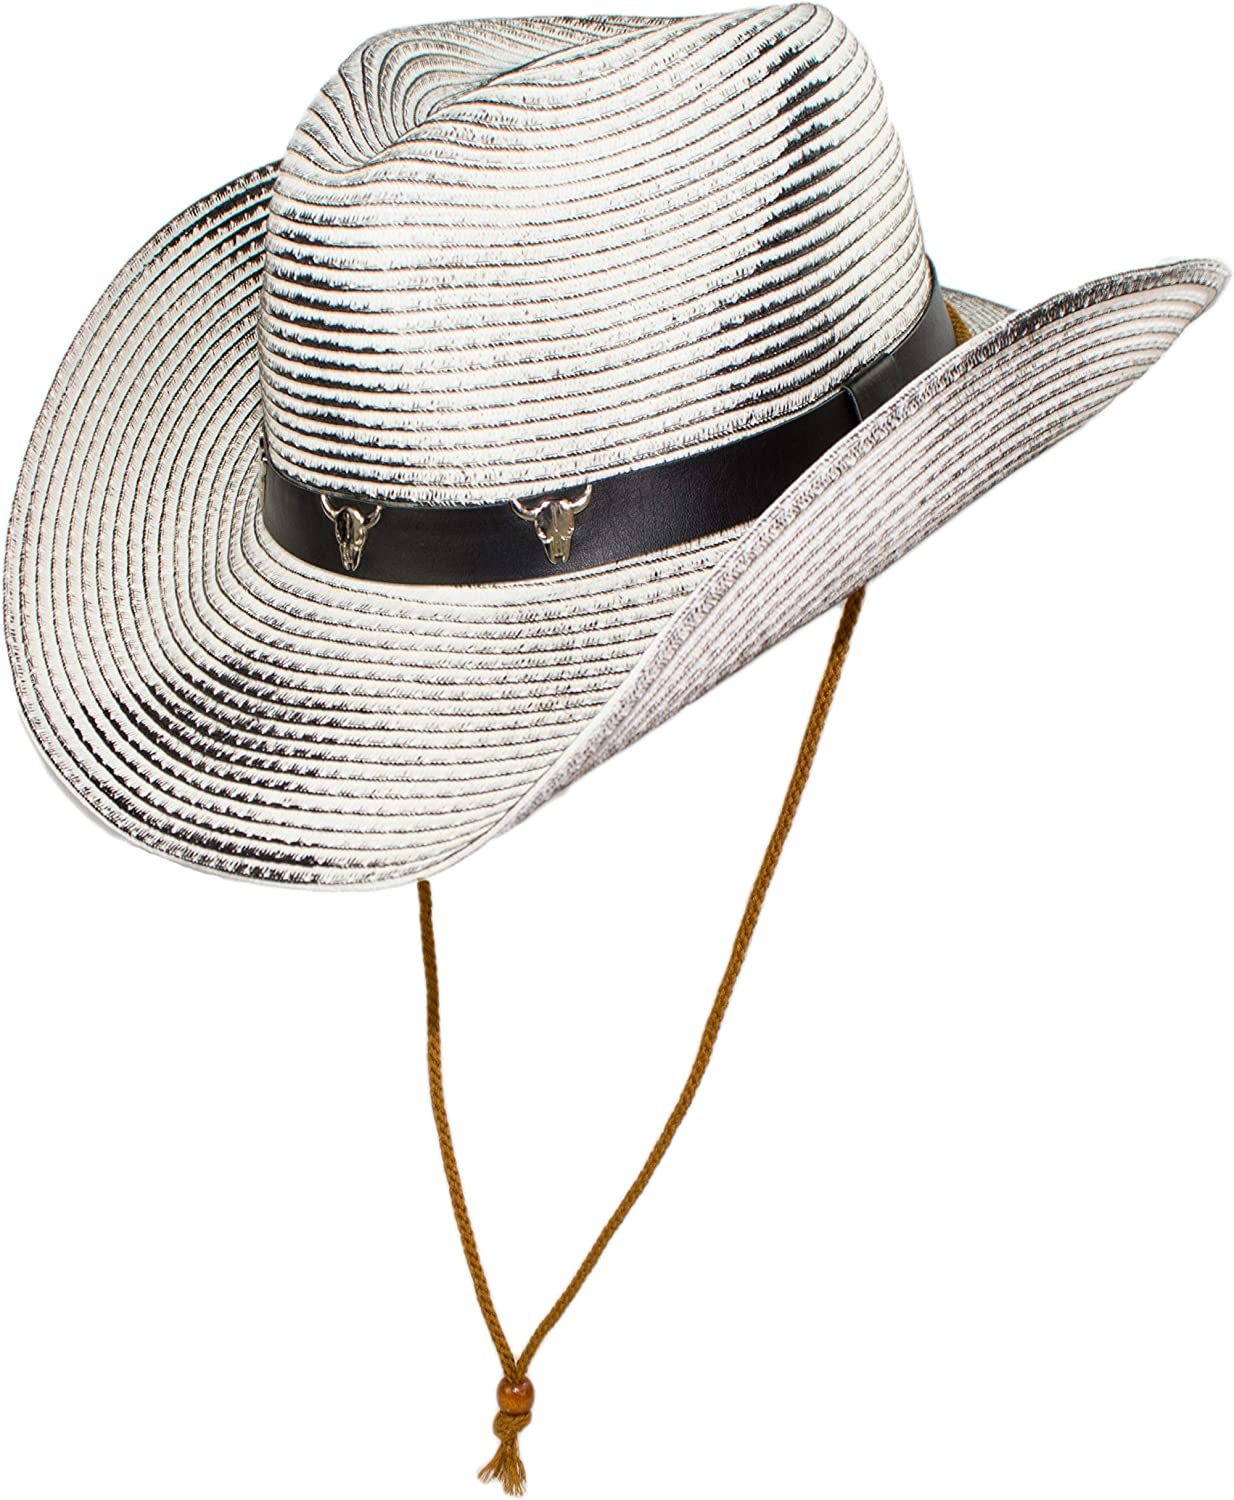 Black Hatband with Longhorn Skeletons Western Rustic Rodeo Shapeable Straw Cowboy Hat with Chin Strap White Large